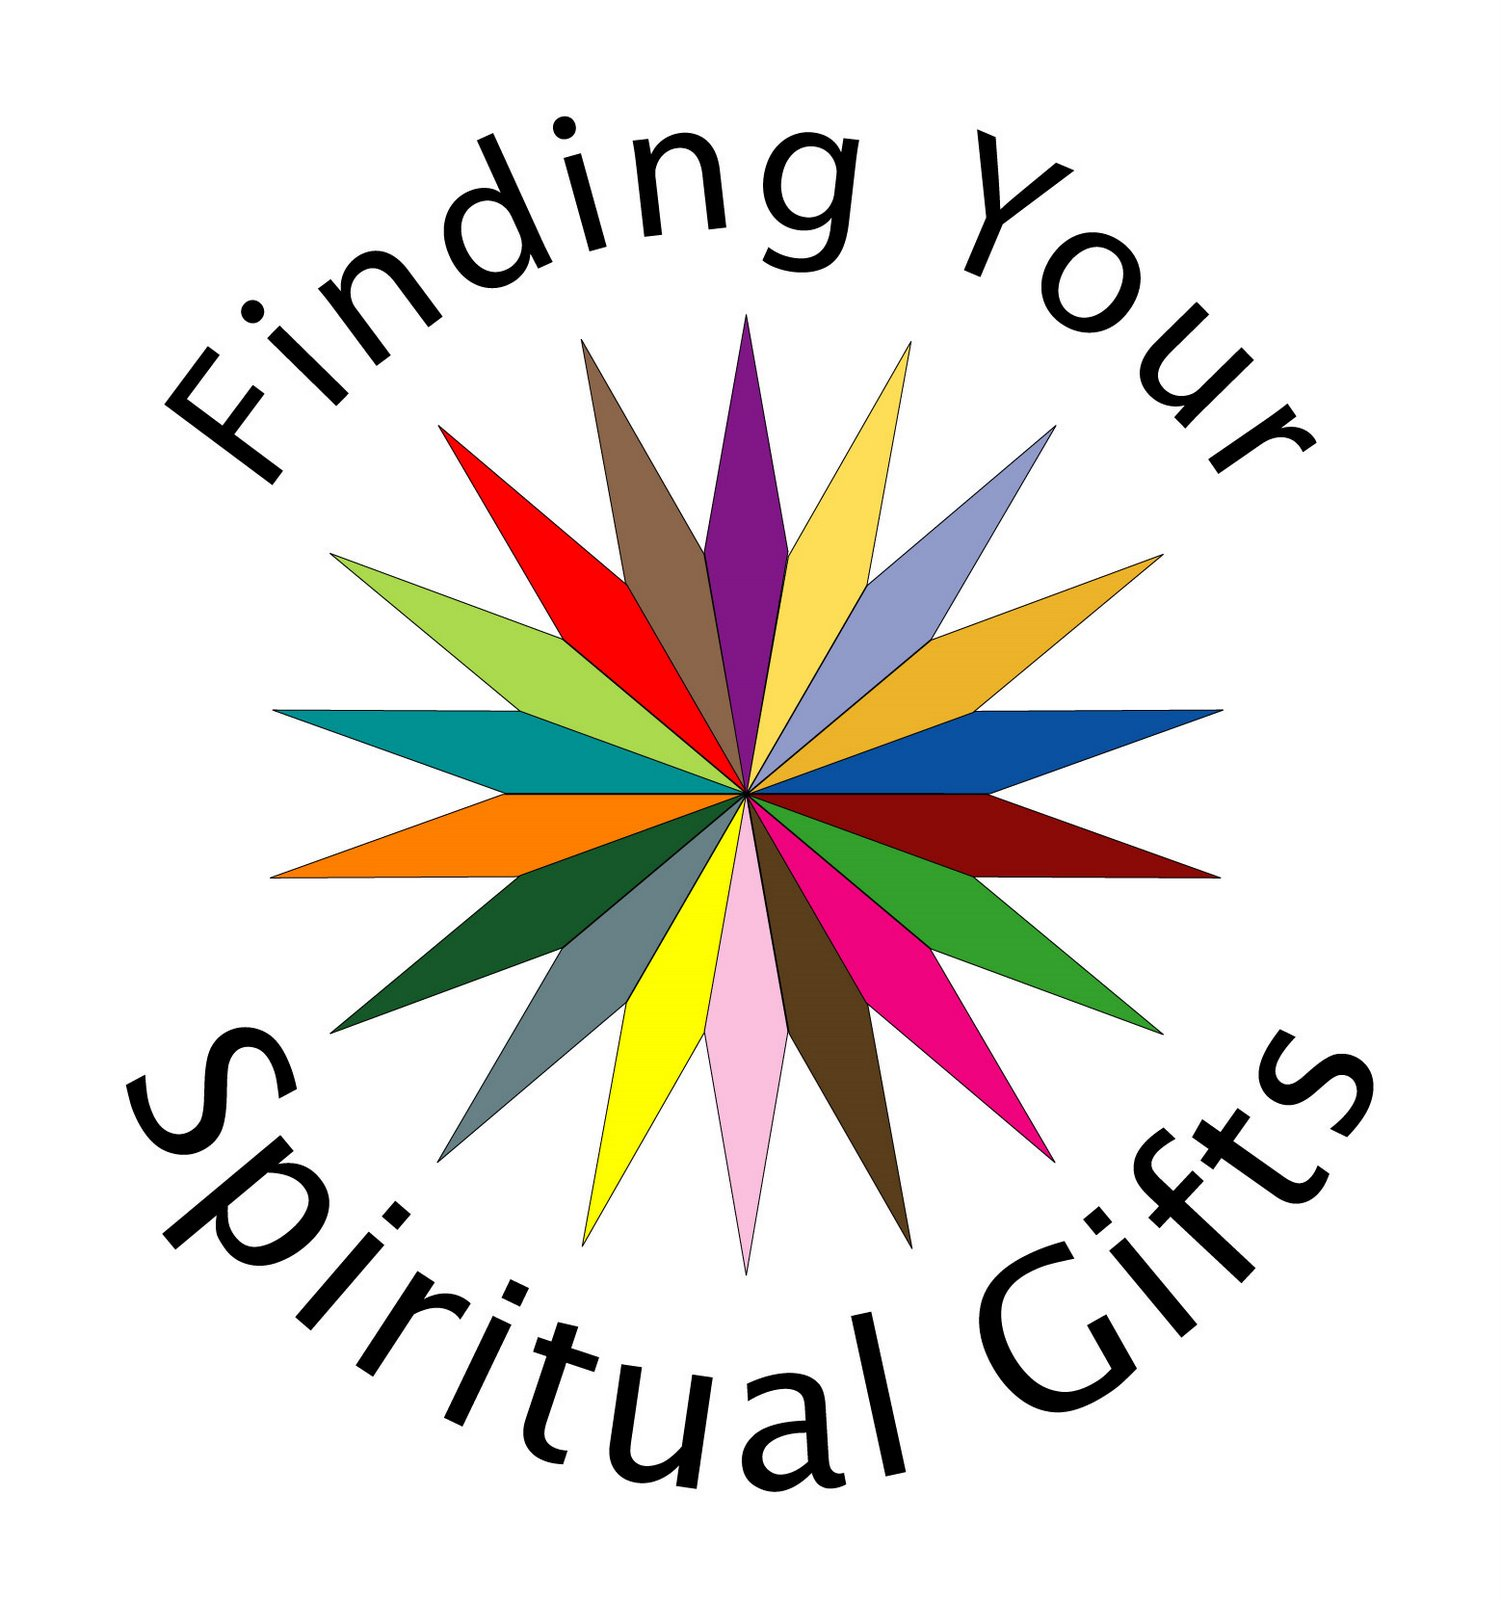 Free Spiritual Gifts Cliparts, Download Free Clip Art, Free.